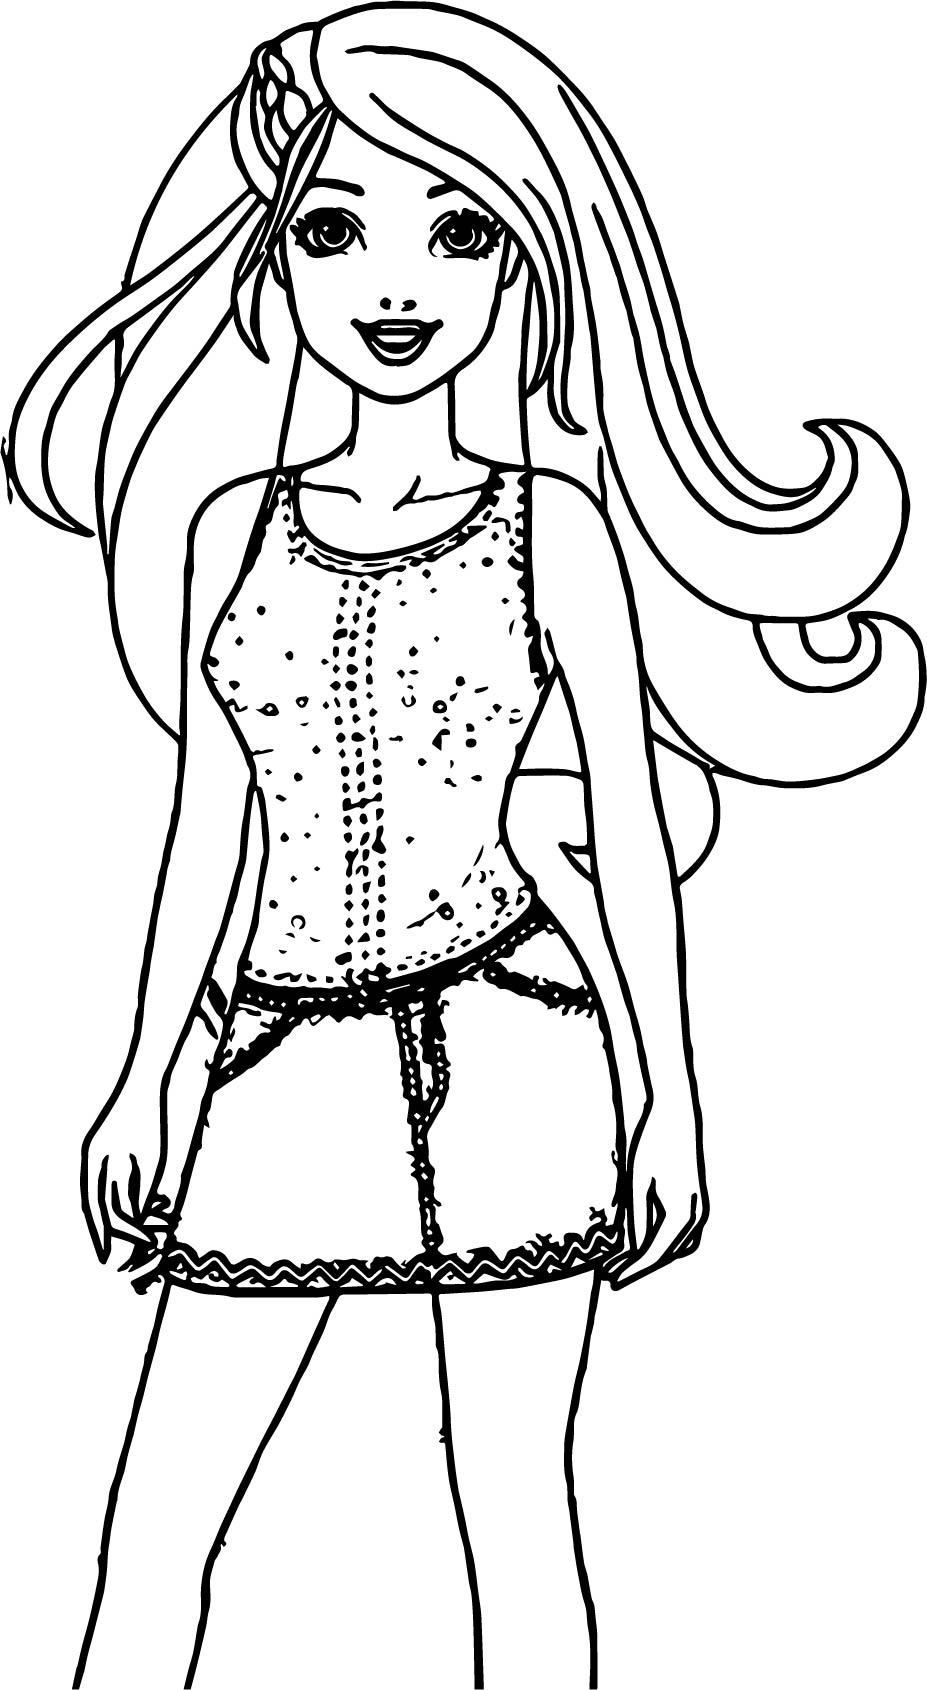 Barbie dress coloring page for Barbie dress up coloring pages